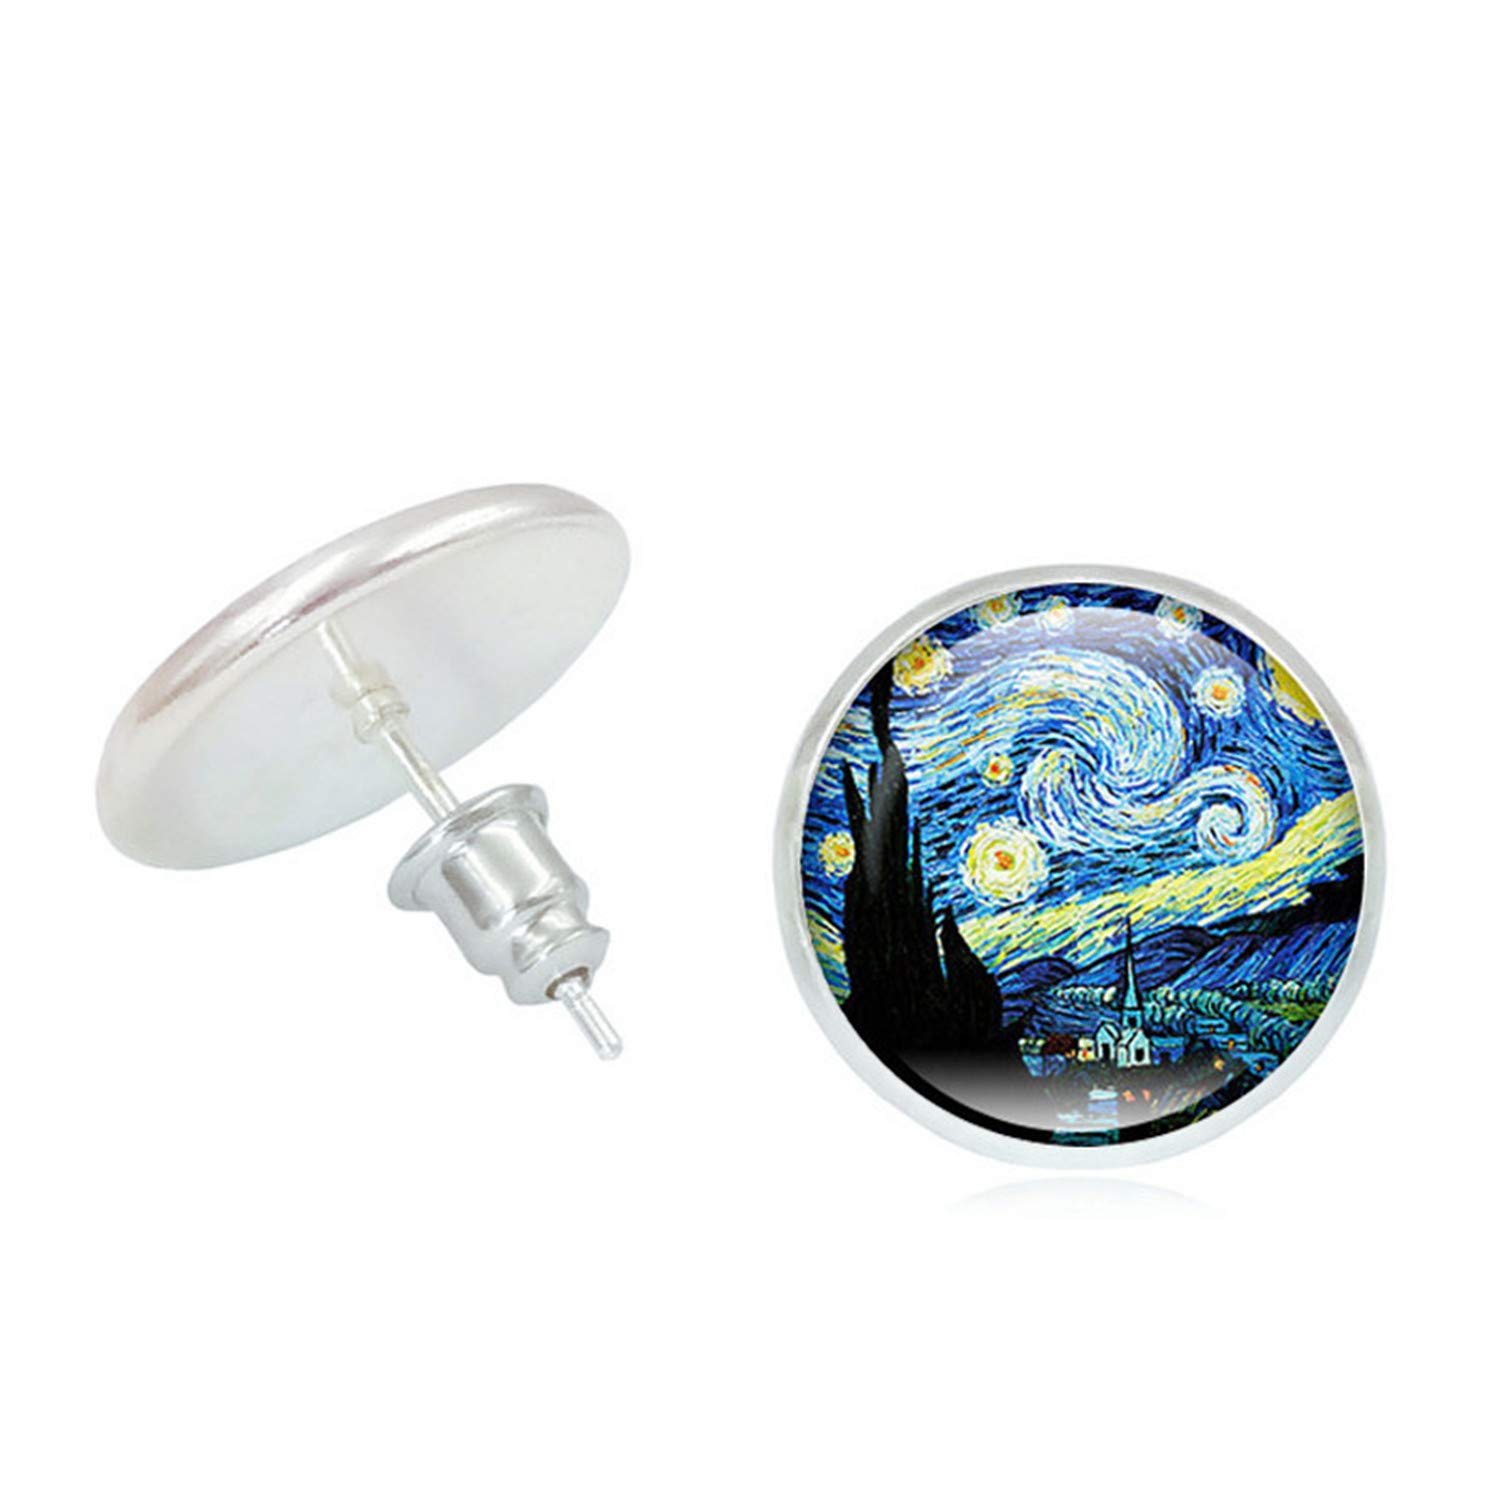 Popular 2019 Painting The Starry Night Ear Studs Stud Earrings Van Gogh Sunflowers Round Classic Jewelry Creative